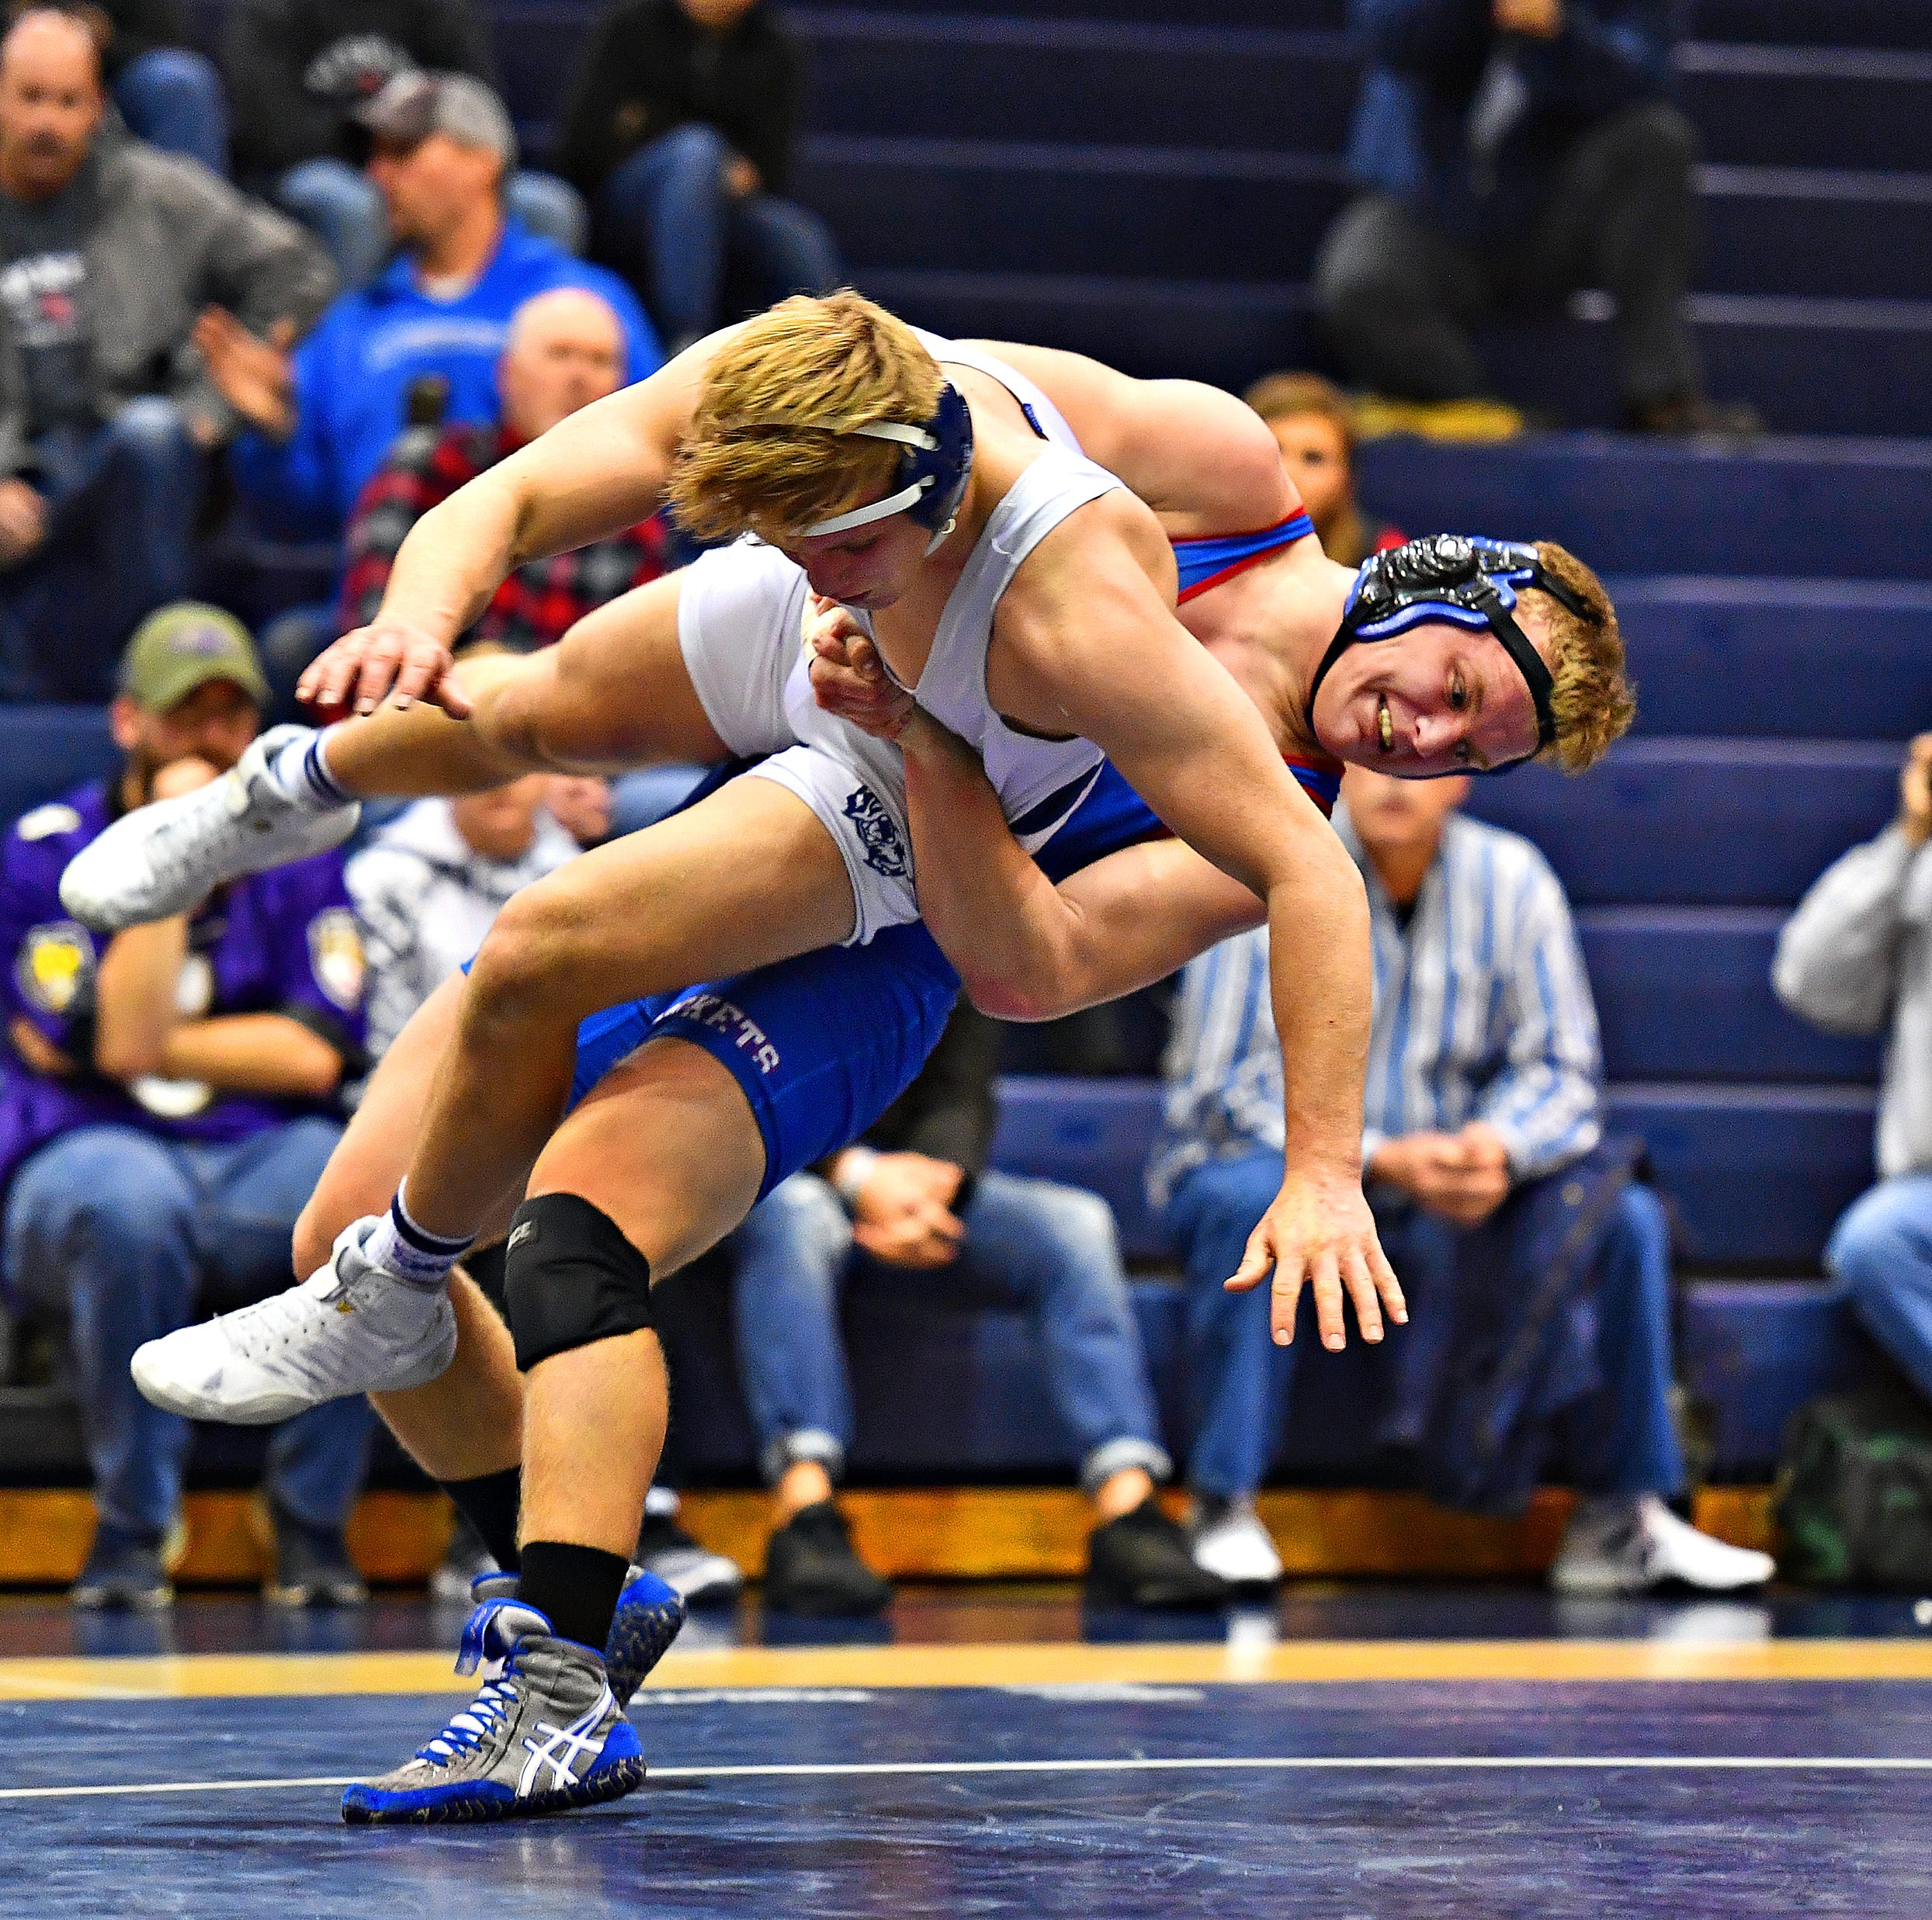 PREP ROUNDUP, THURSDAY, JAN. 17: Dallastown wrestling program regains championship stature